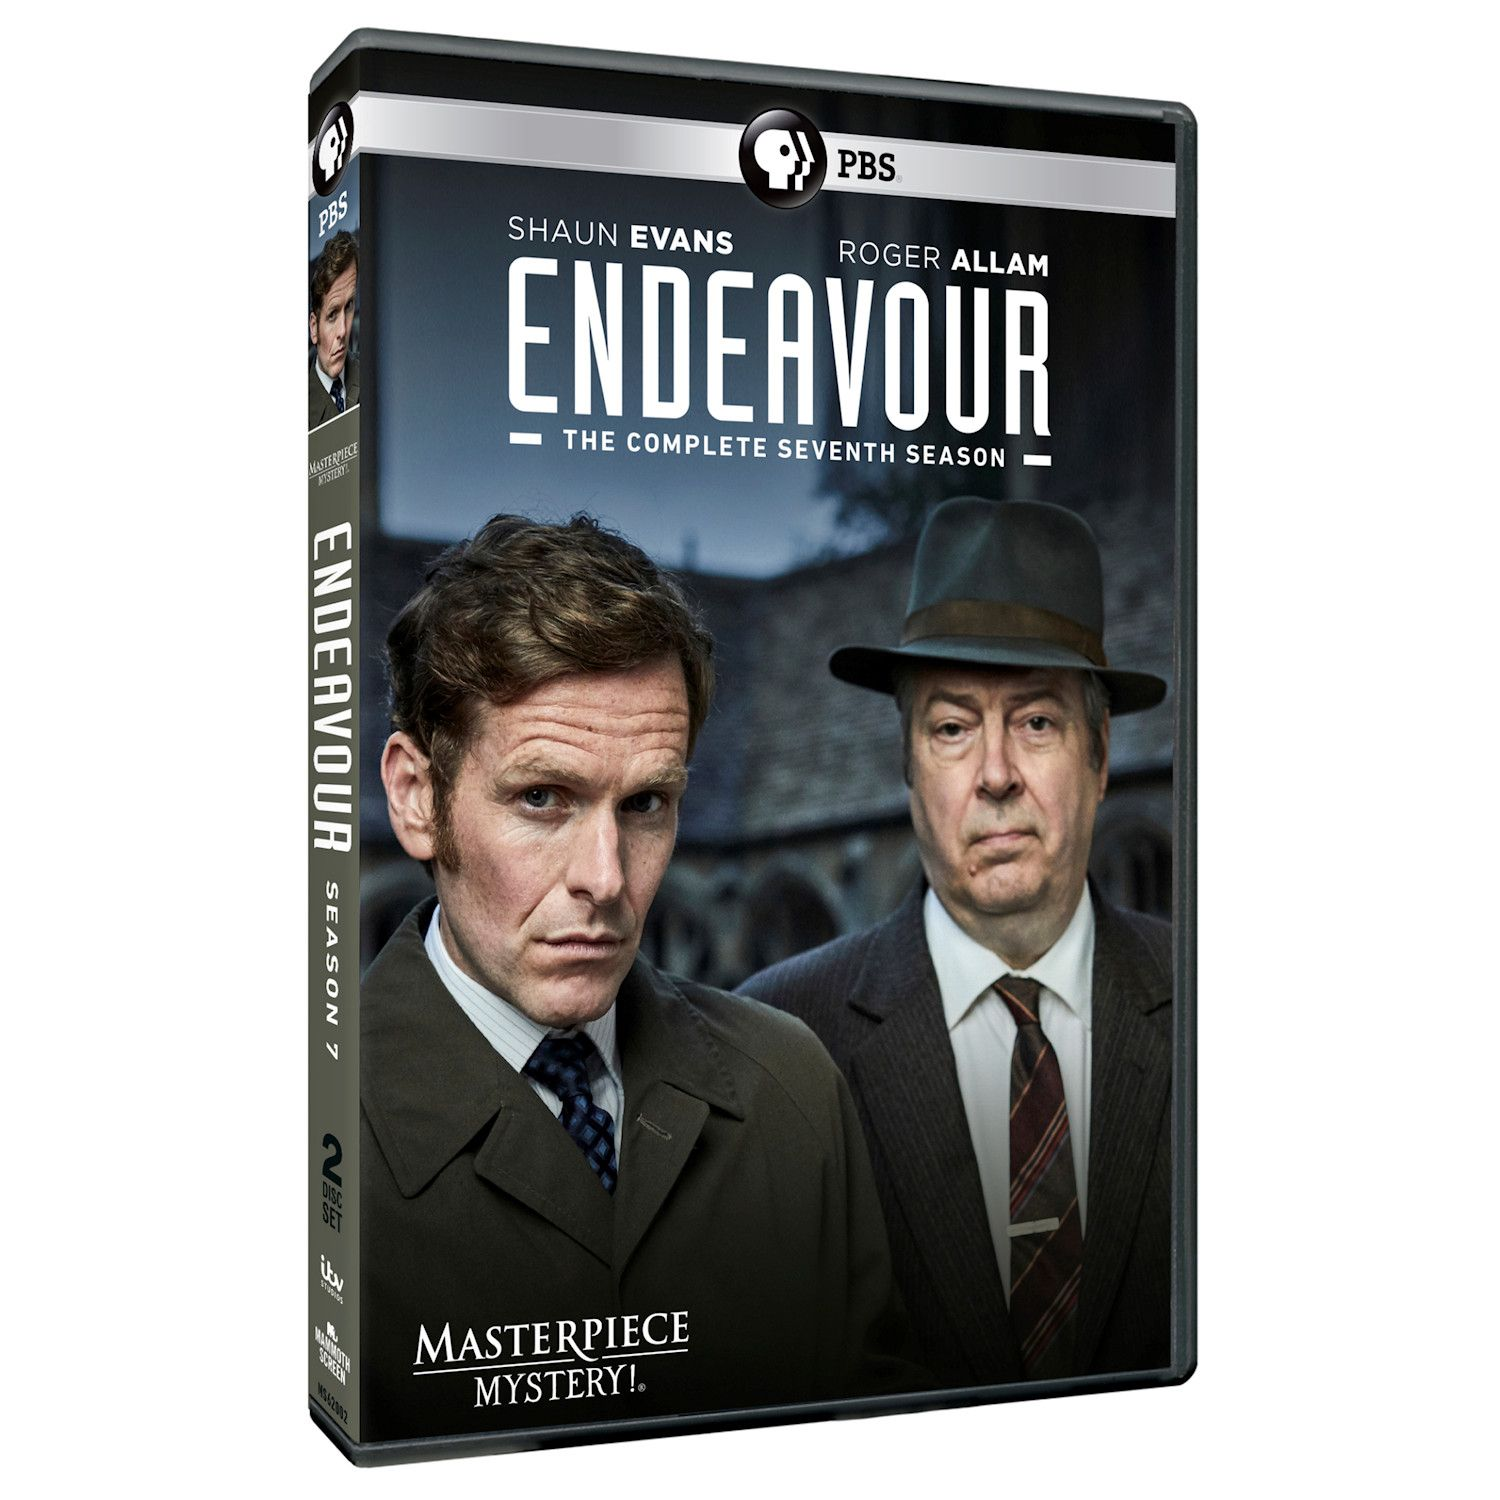 Endeavour Season 7 Dvd & Blu-ray - Blu-ray